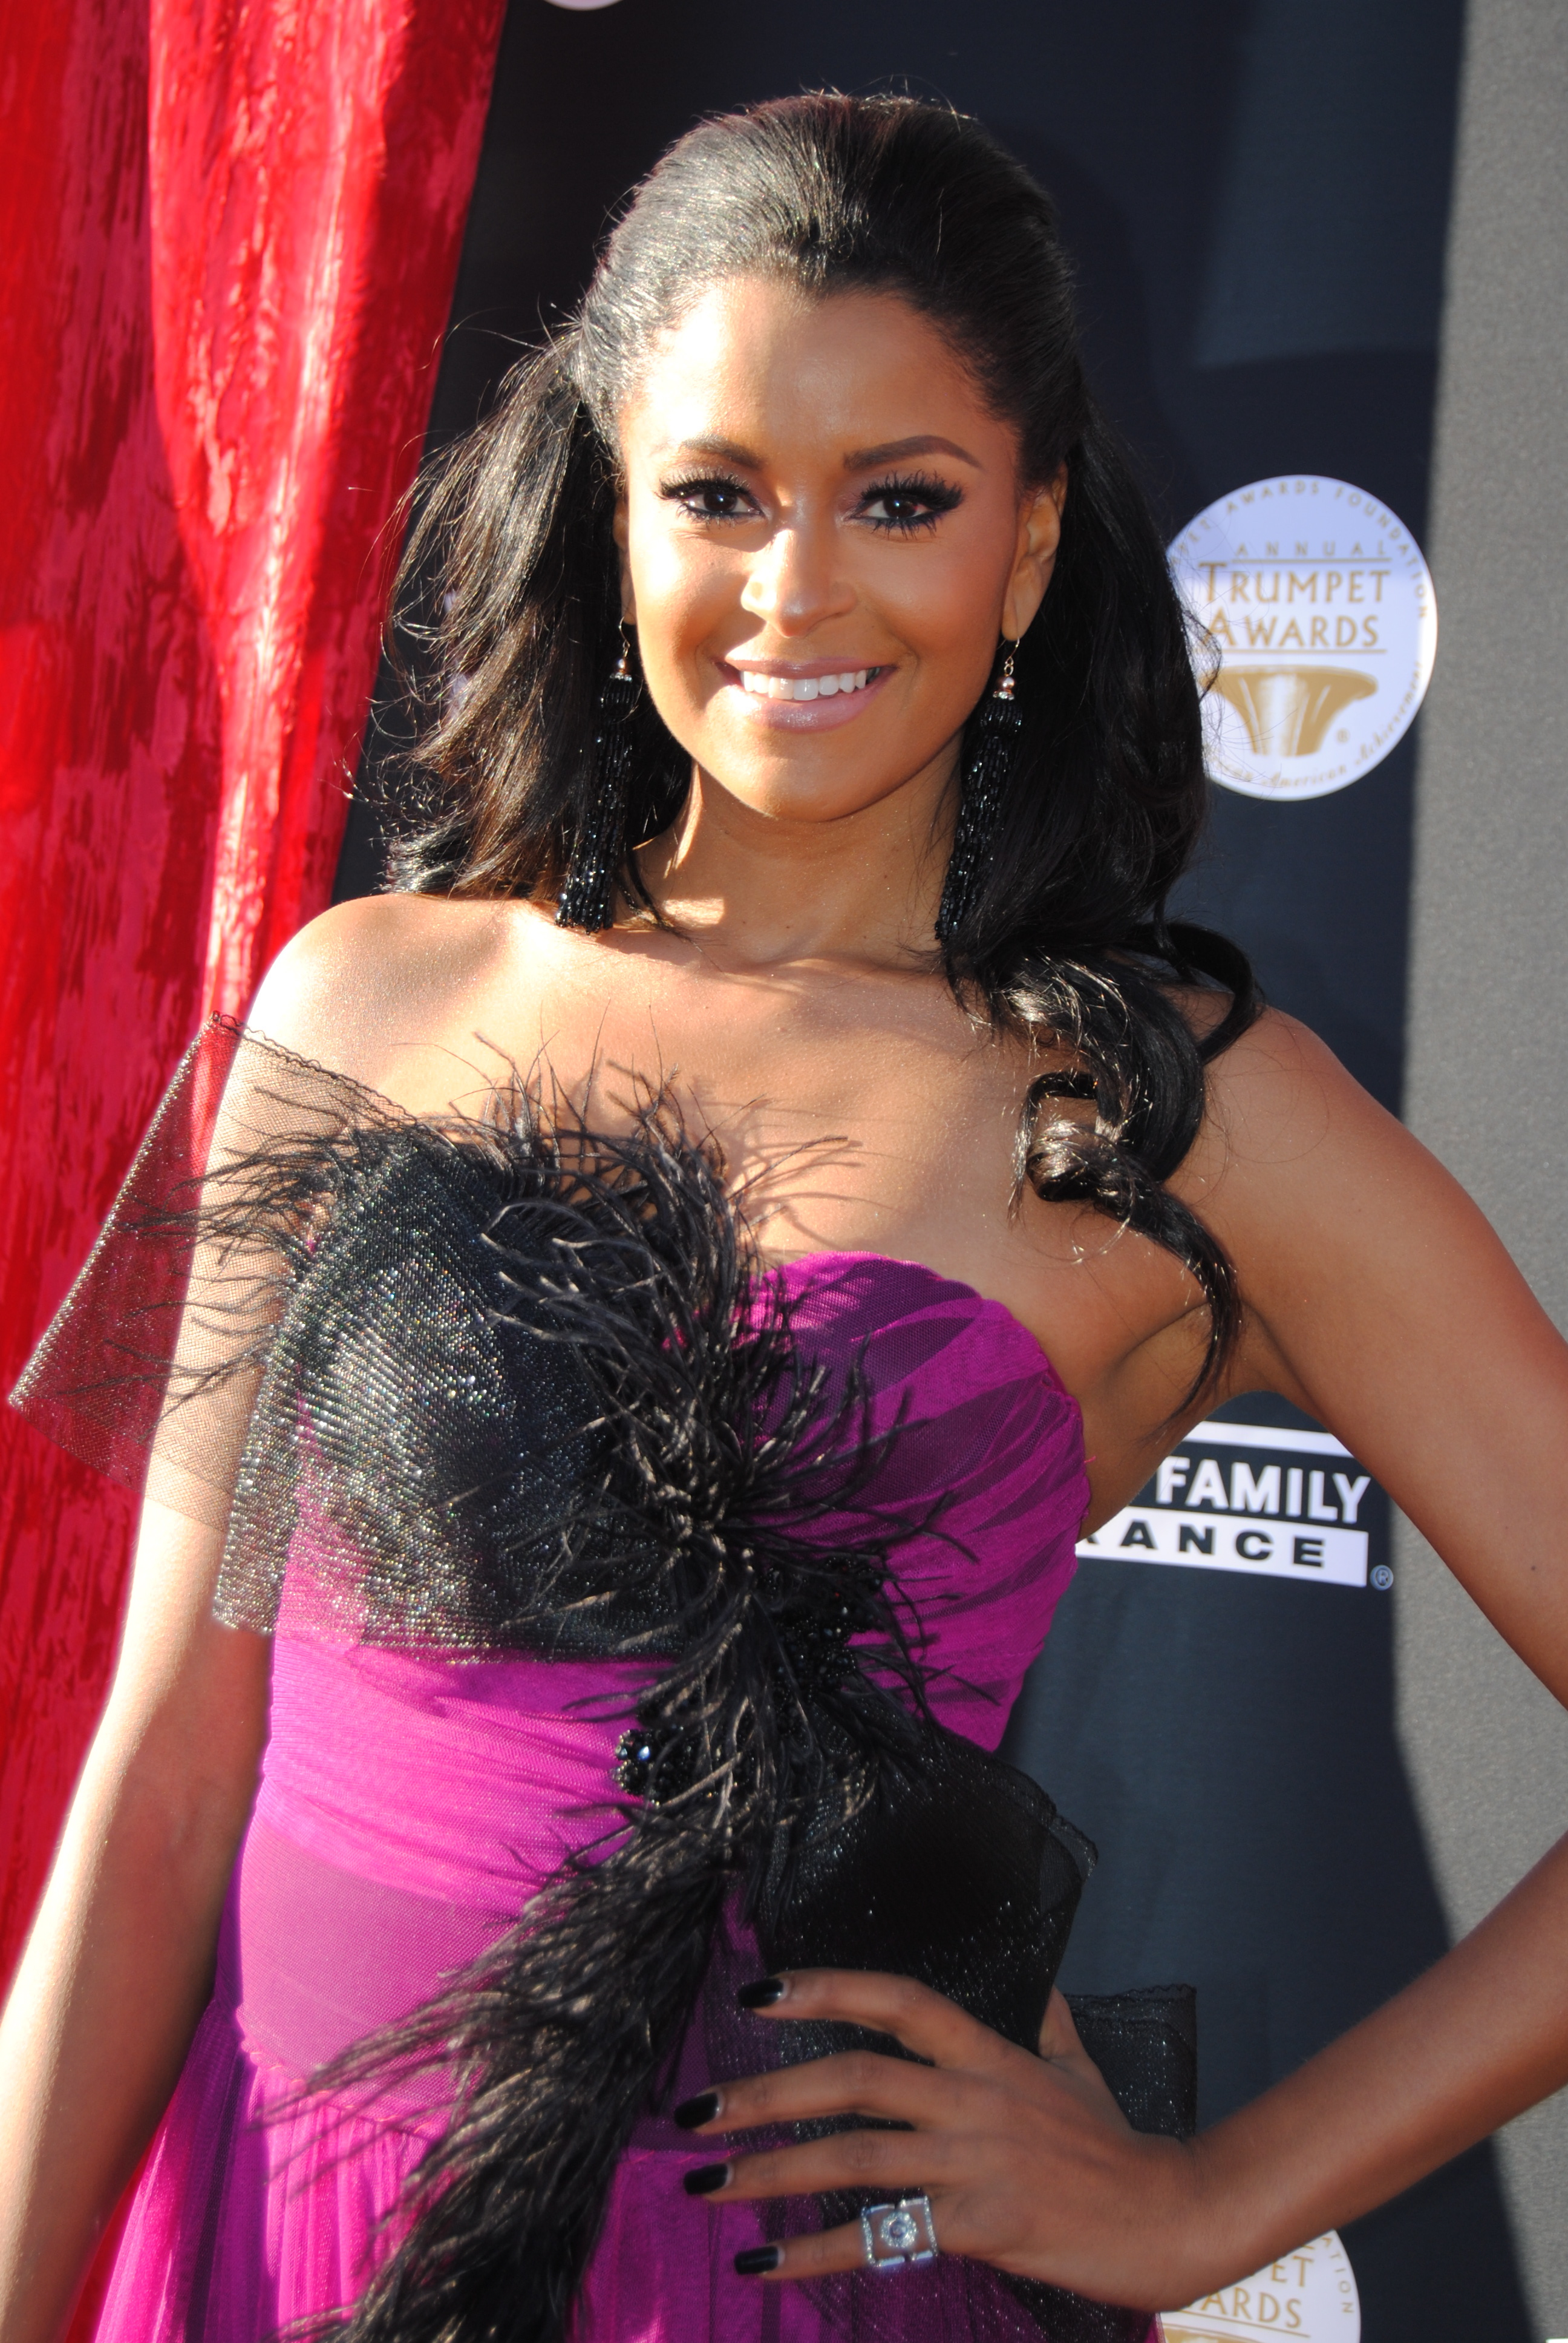 Styling Sunday: Claudia Jordan 2015 Trumpet Awards